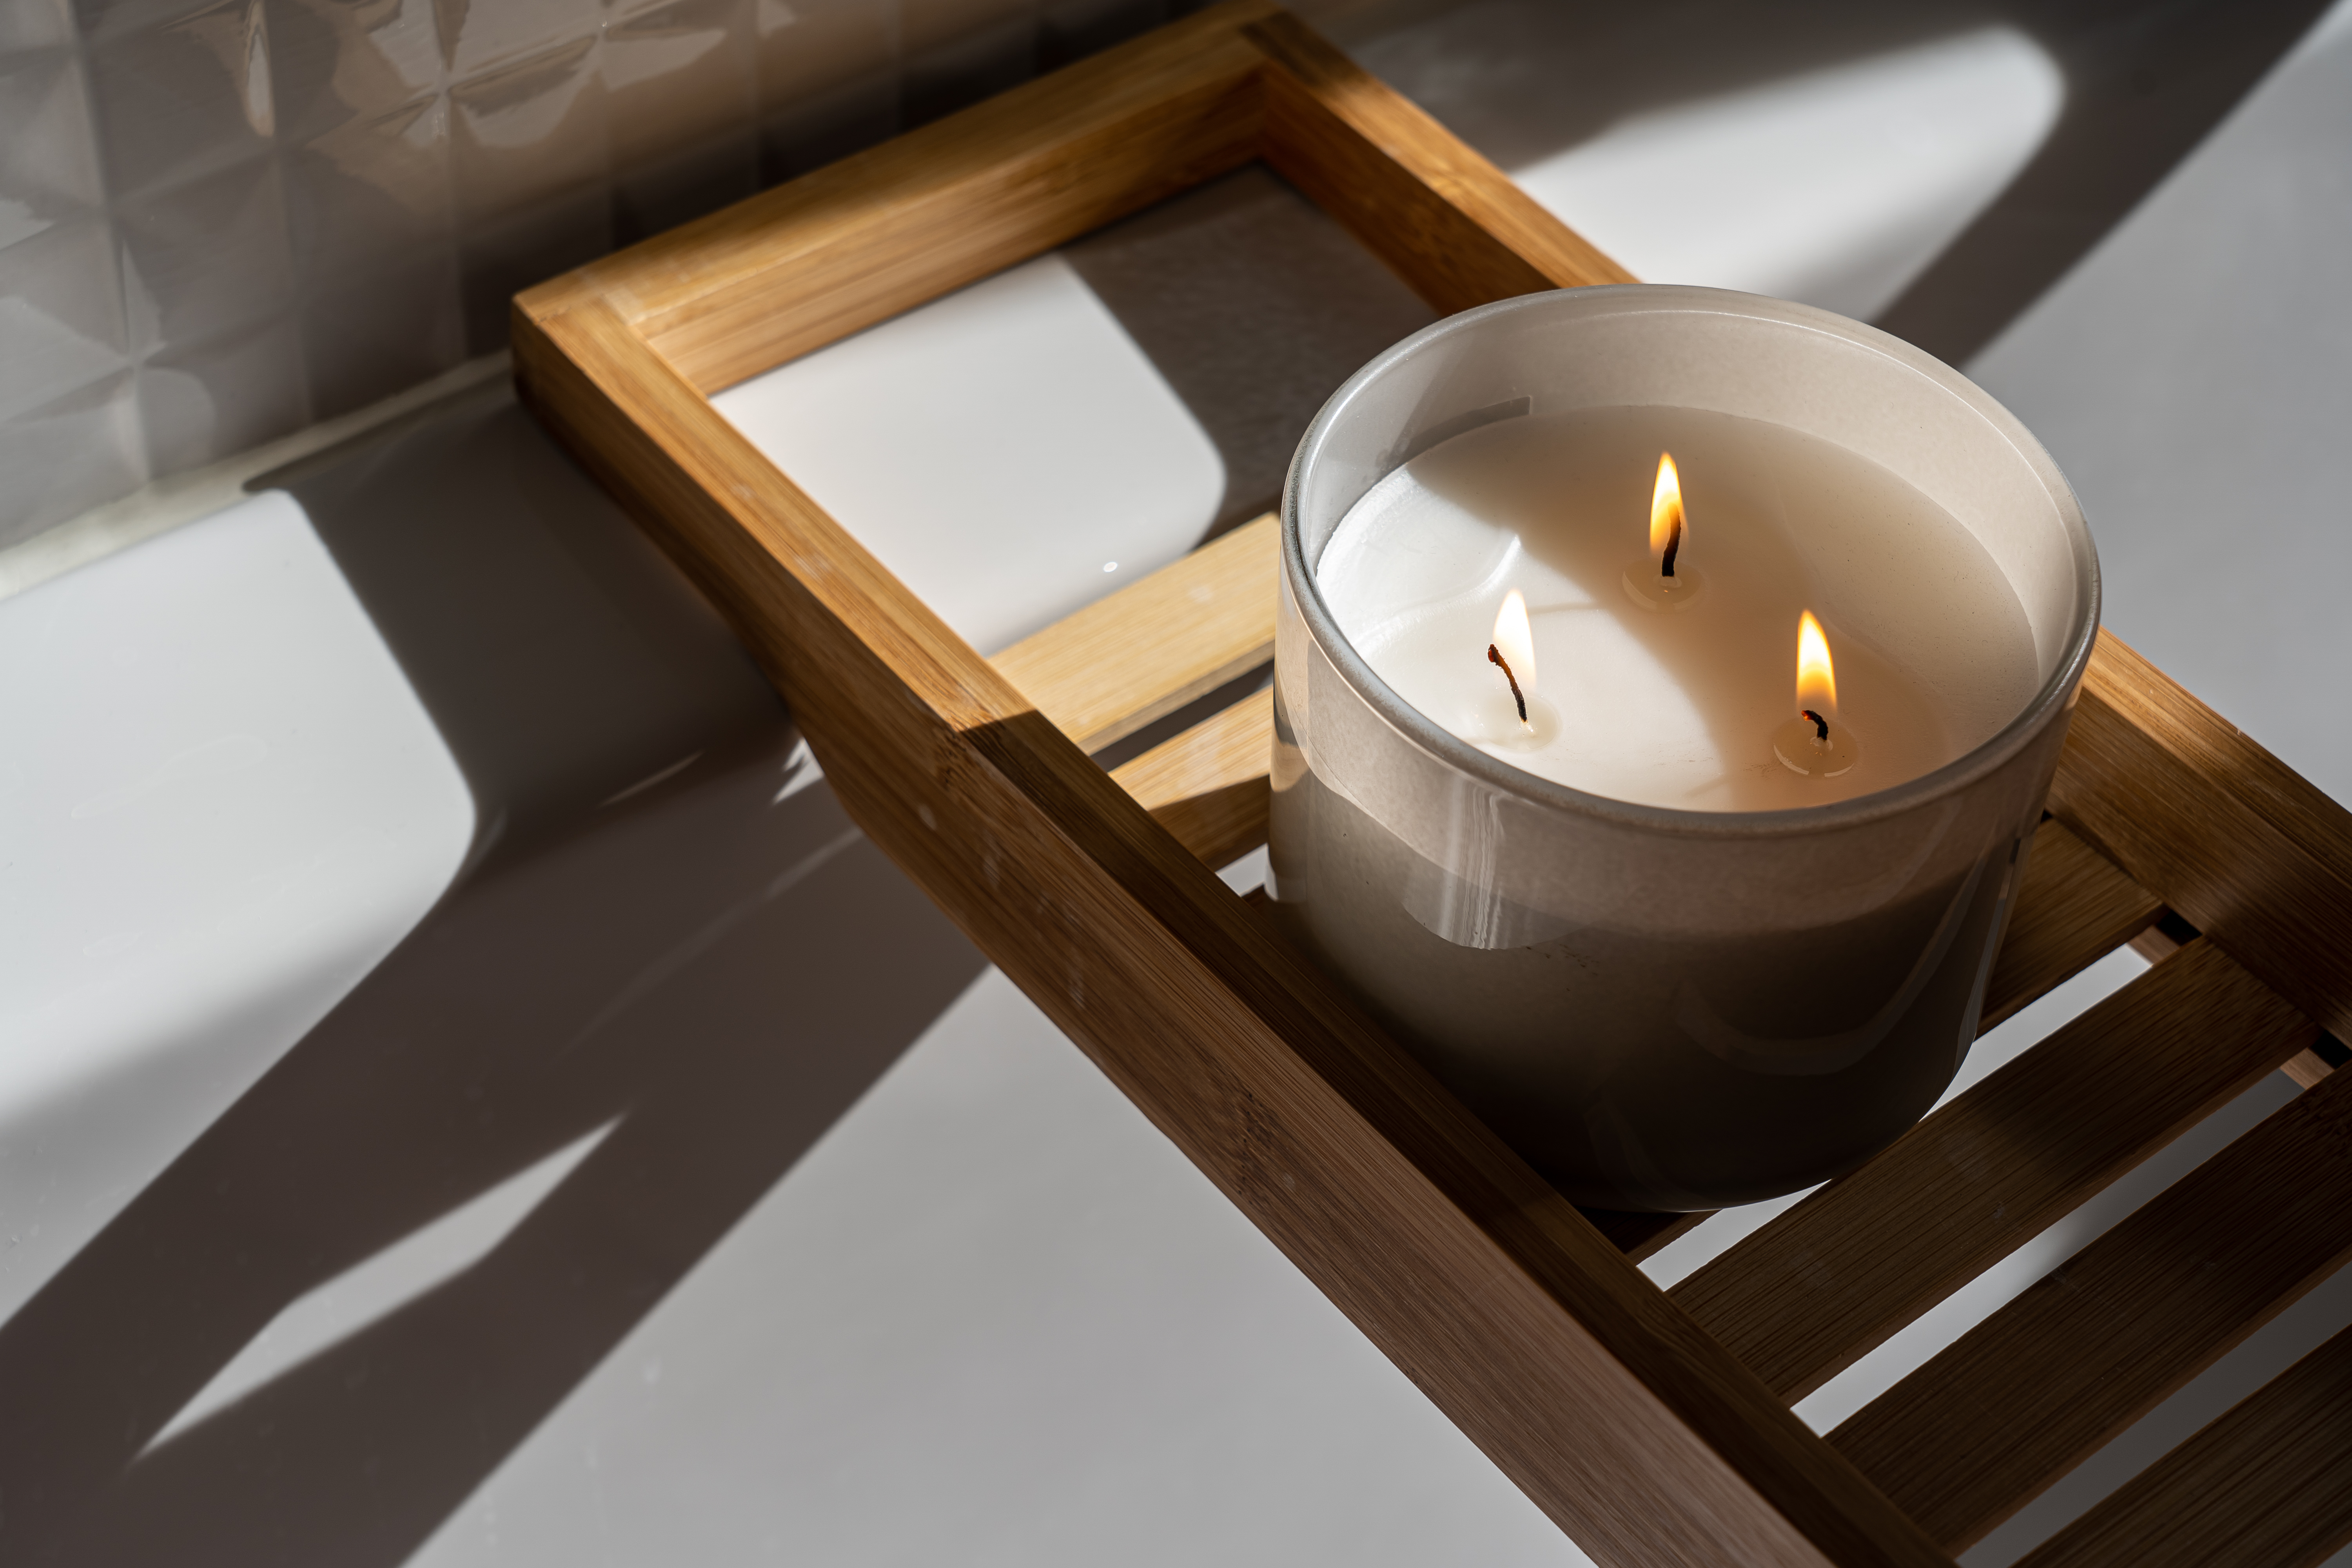 Canva - Photo Of Candle On Wooden Tray